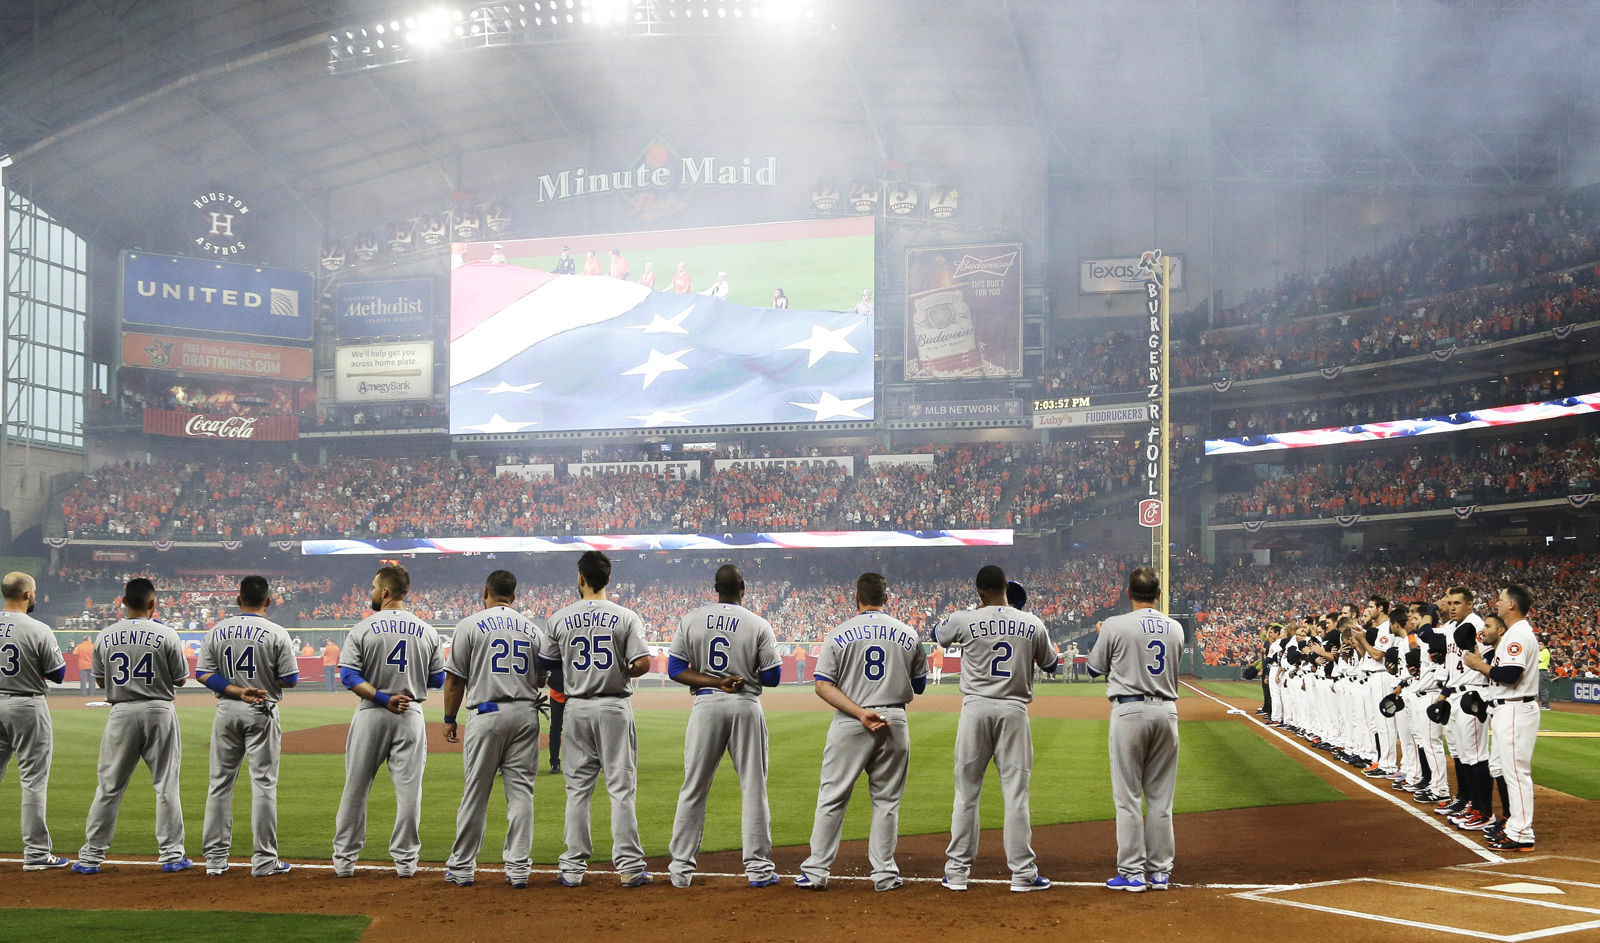 Minute Maid Park, the home of the defending World Series Champion Houston Astros, comes in at No. 23. The average cost is $59.17. File. (AP Photo/Pat Sullivan)